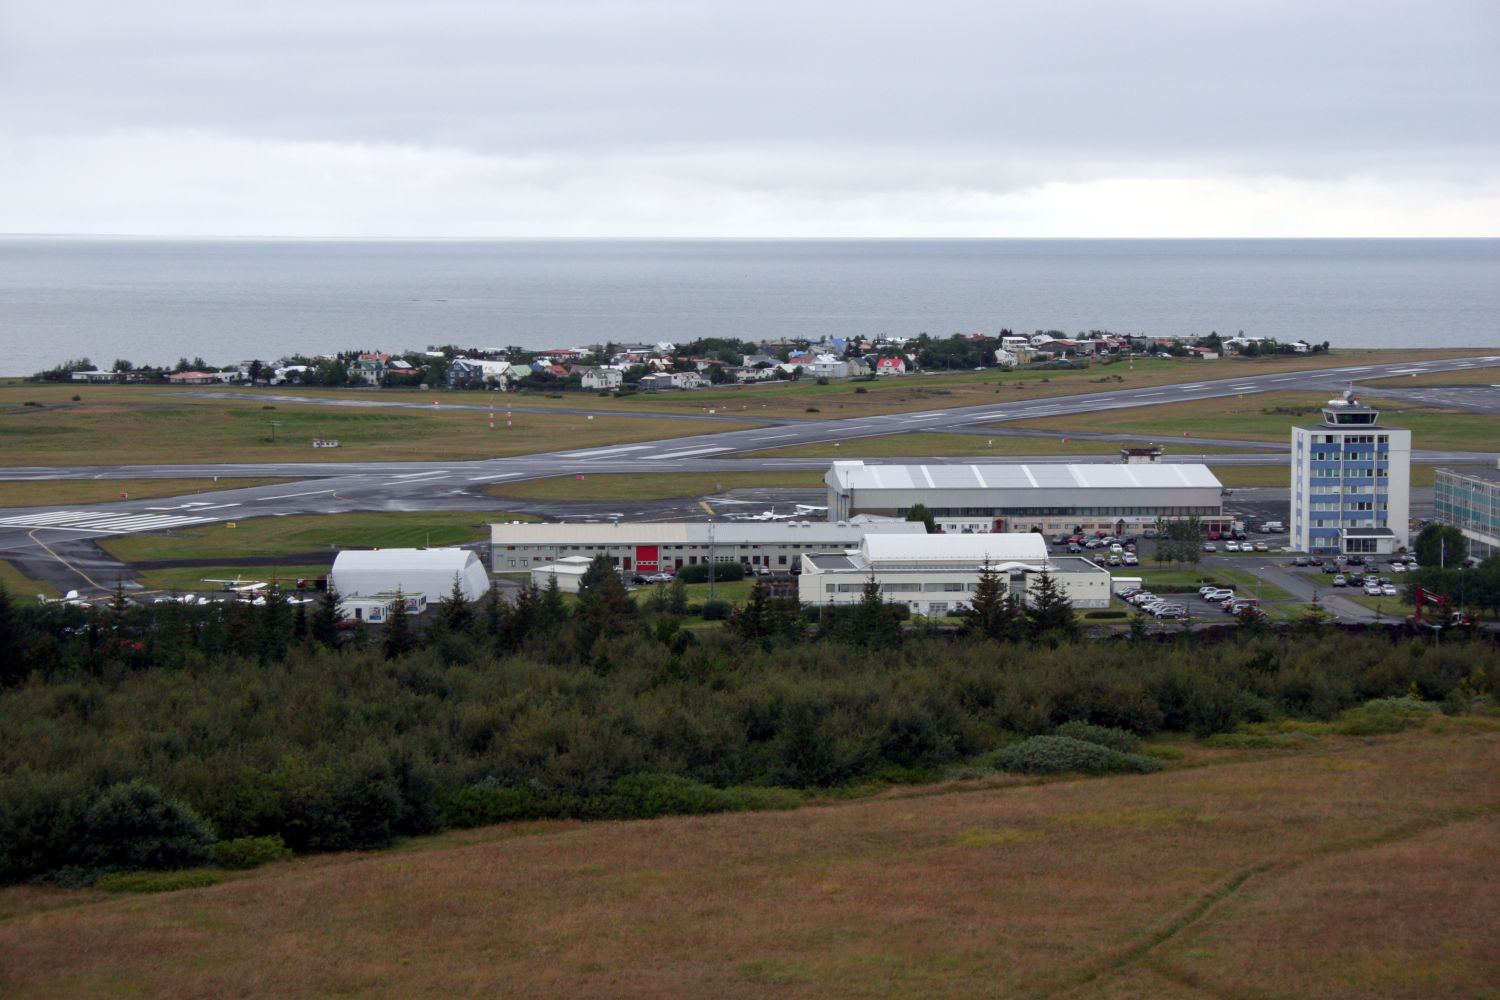 View over Reykjavik Airport from the nearby Perlan attraction.